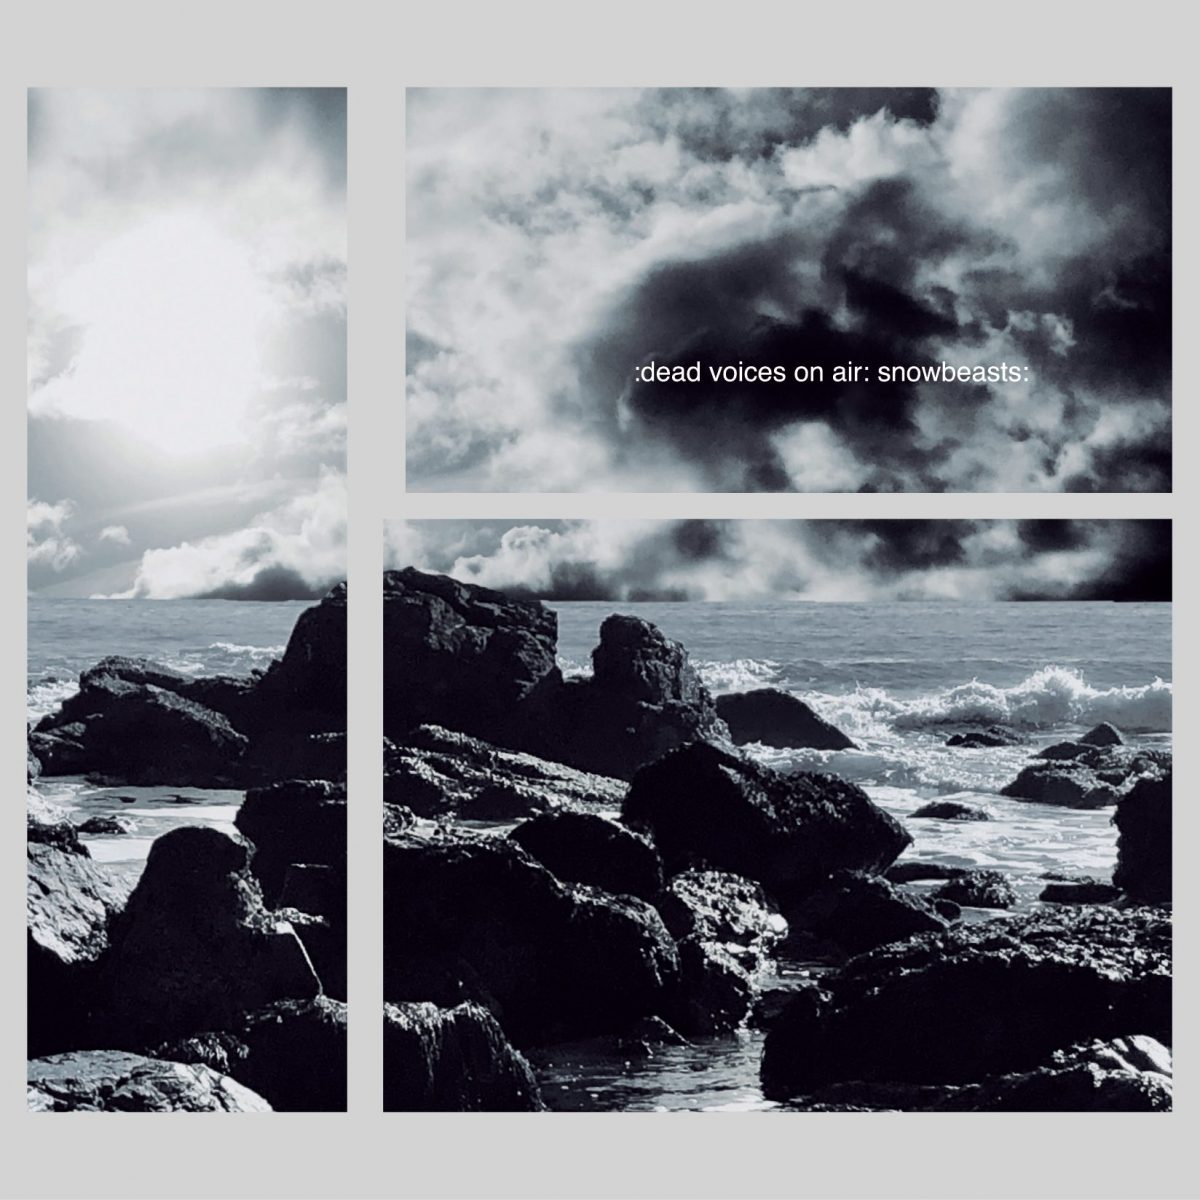 Dark ambient act Dead Voices On Air joined by Snowbeasts on new album